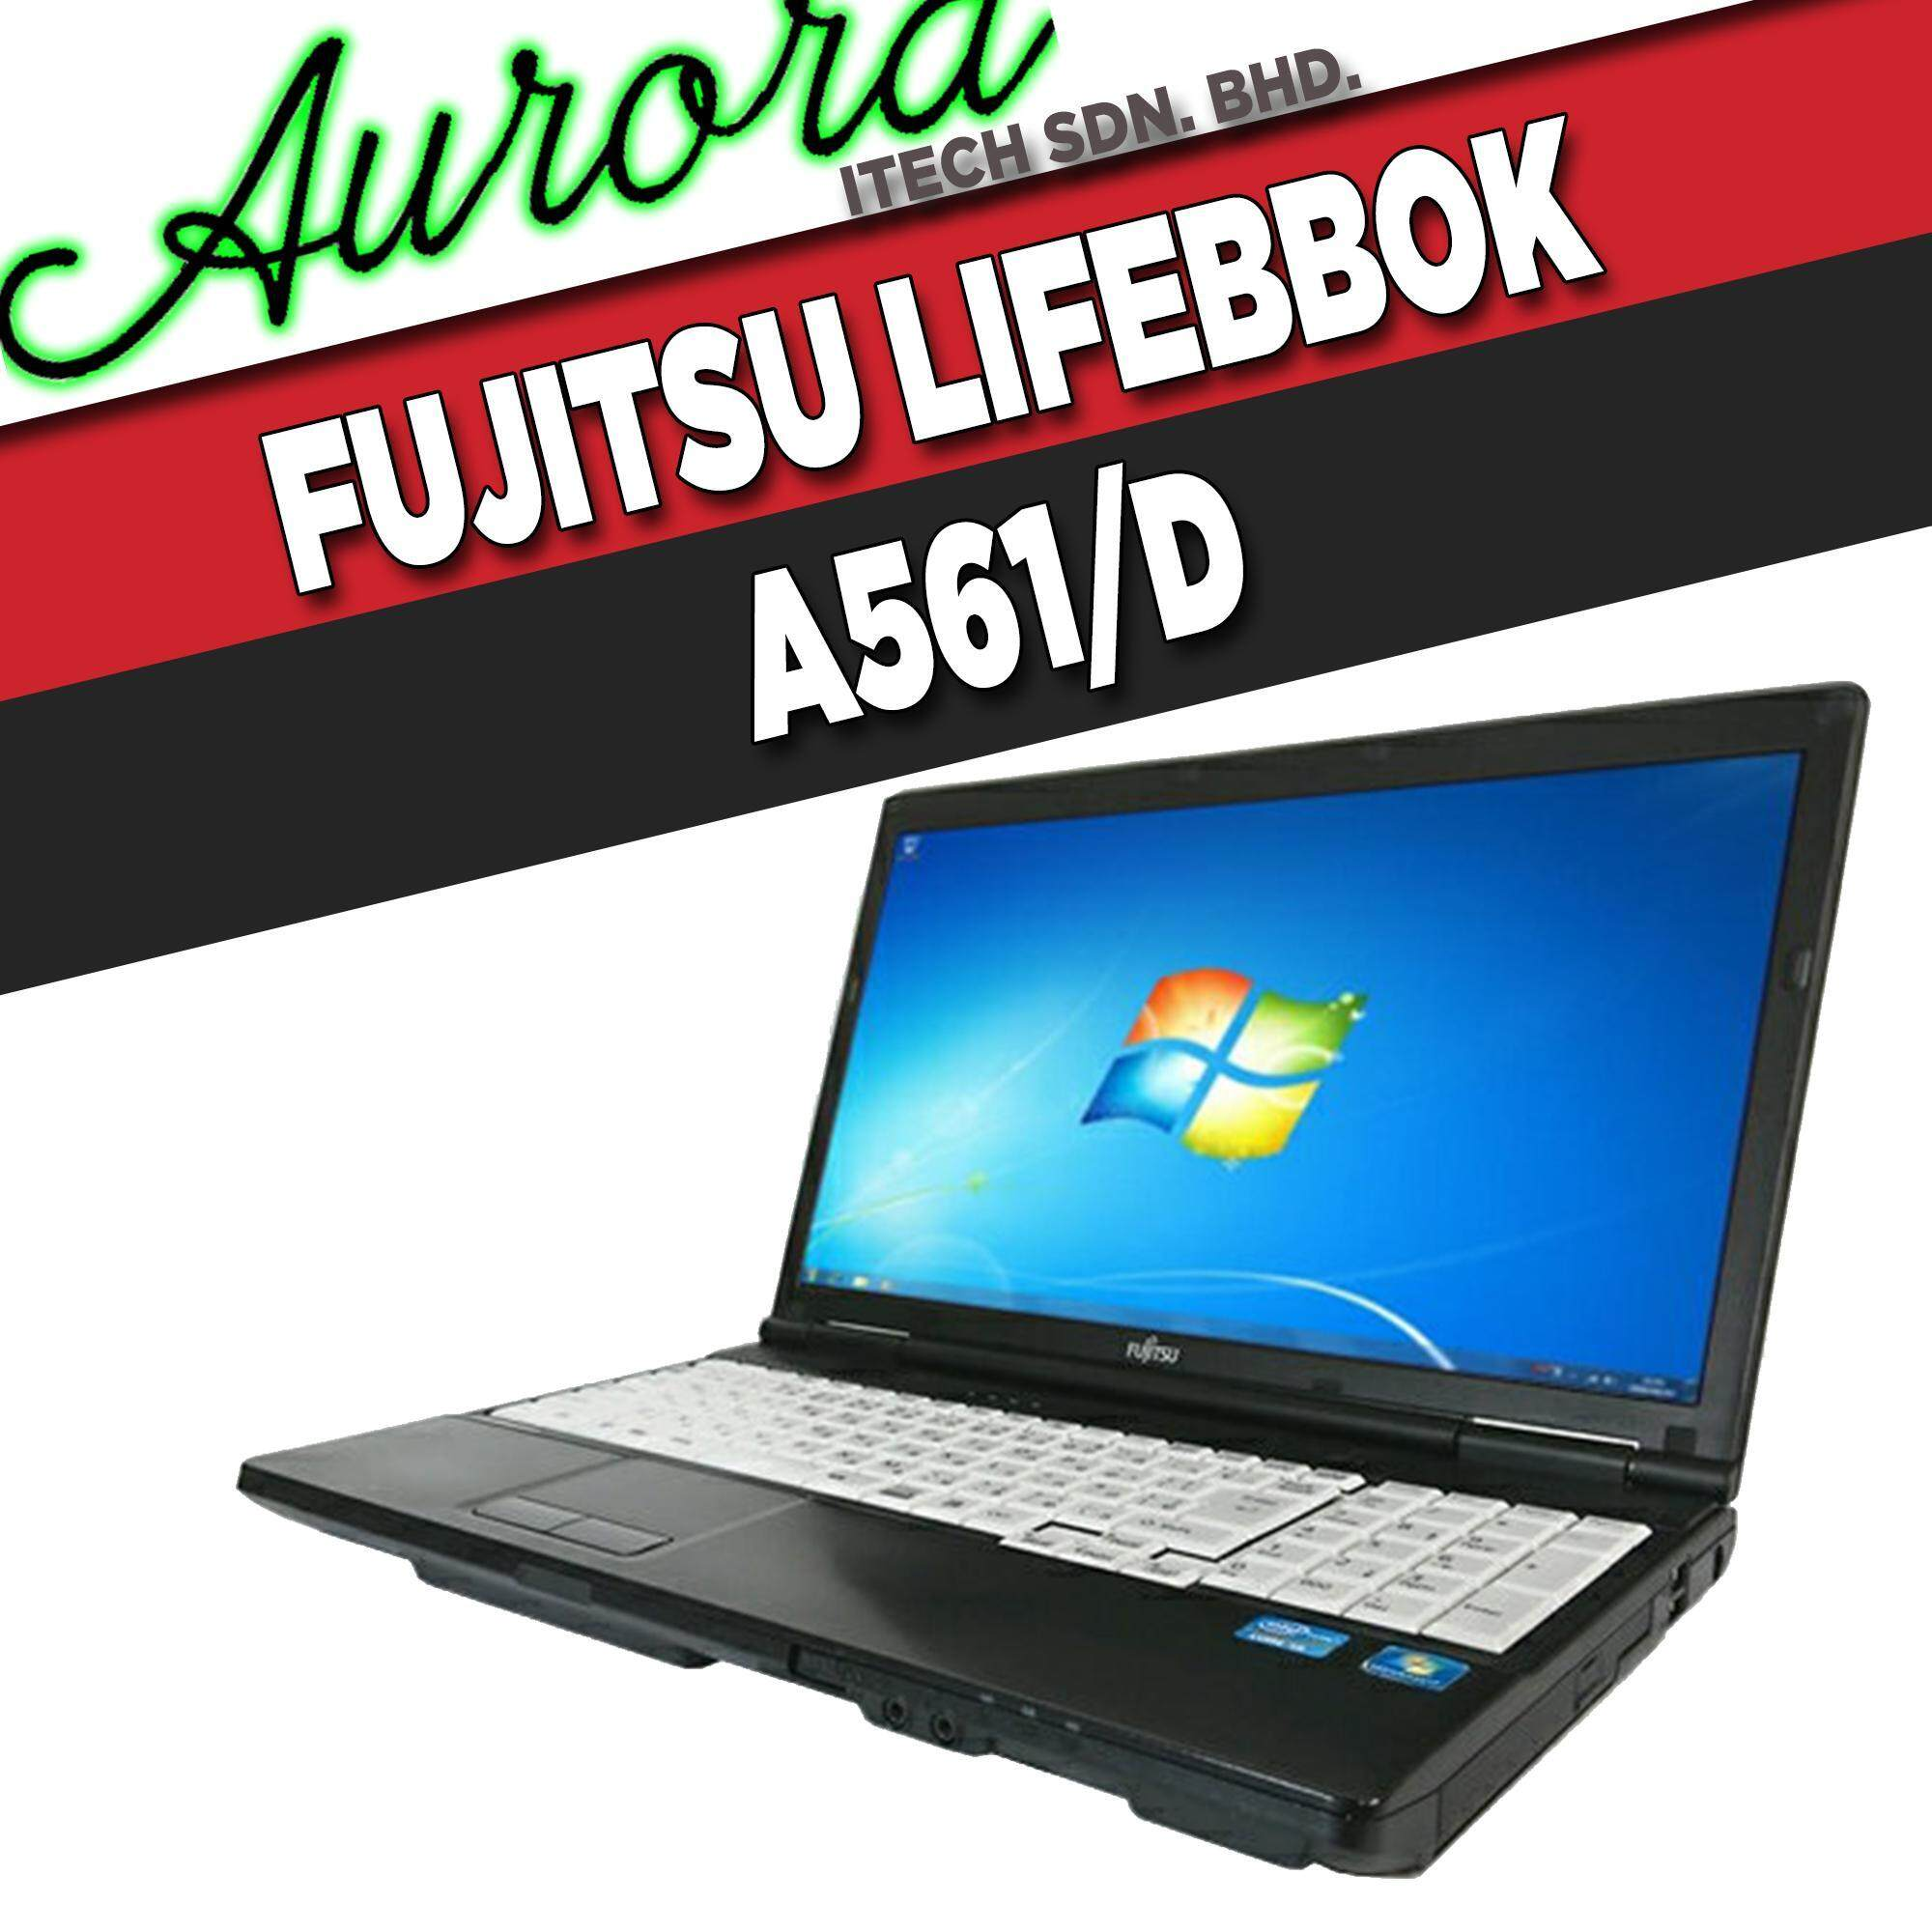 (REFURBISHED) FUJITSU LIFEBOOK A561/D / INTEL CORE i5-2ND GENERATION / 4 GB DDR3 RAM / 250 GB SATA HDD / 15.6 INCH LCD / 1 YearWarranty, Free Mouse Malaysia